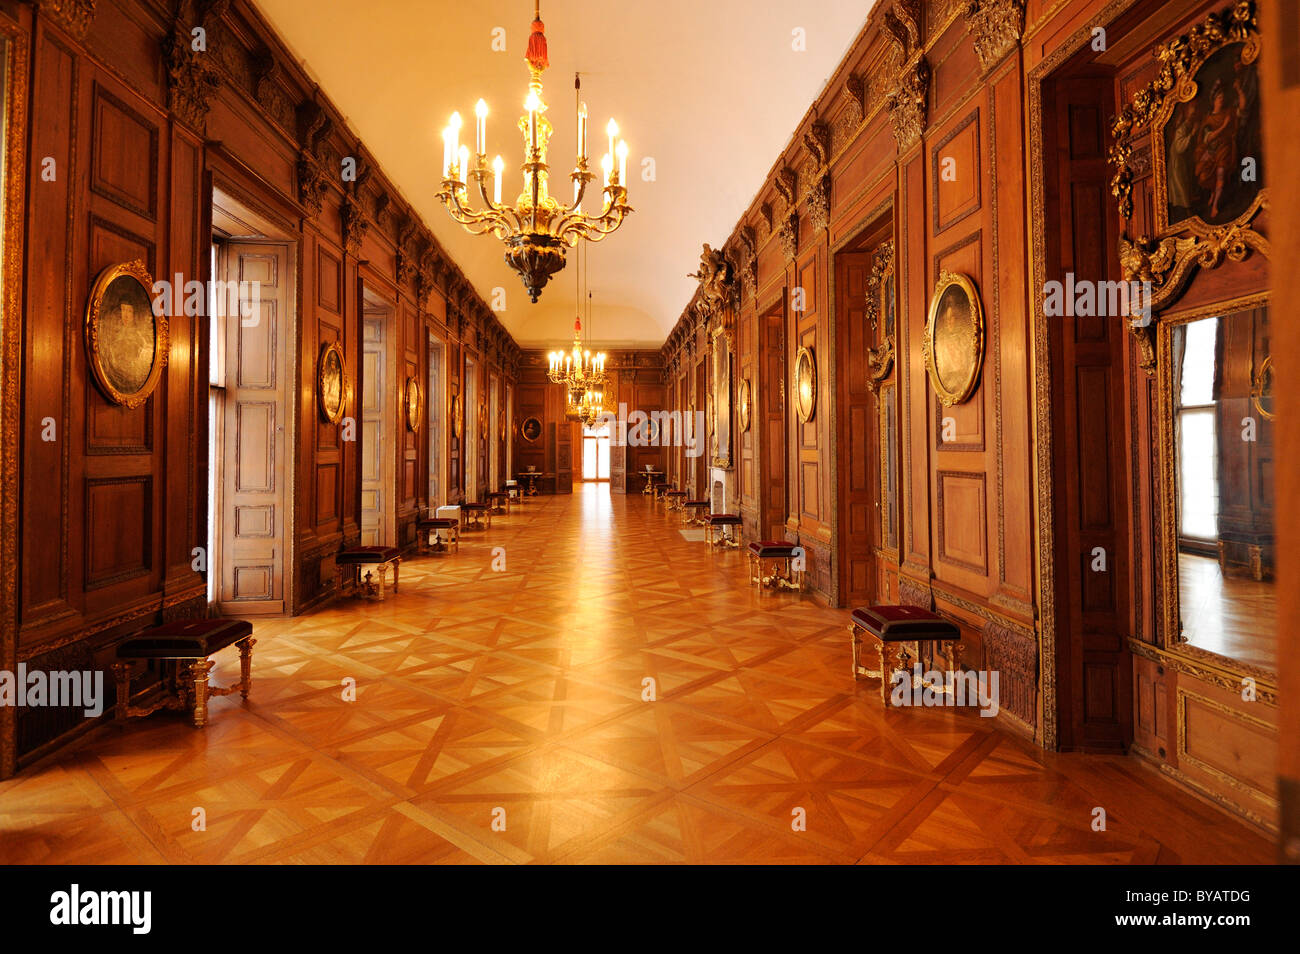 L'intérieur, le palais Schloss Charlottenburg, Berlin, Germany, Europe Photo Stock